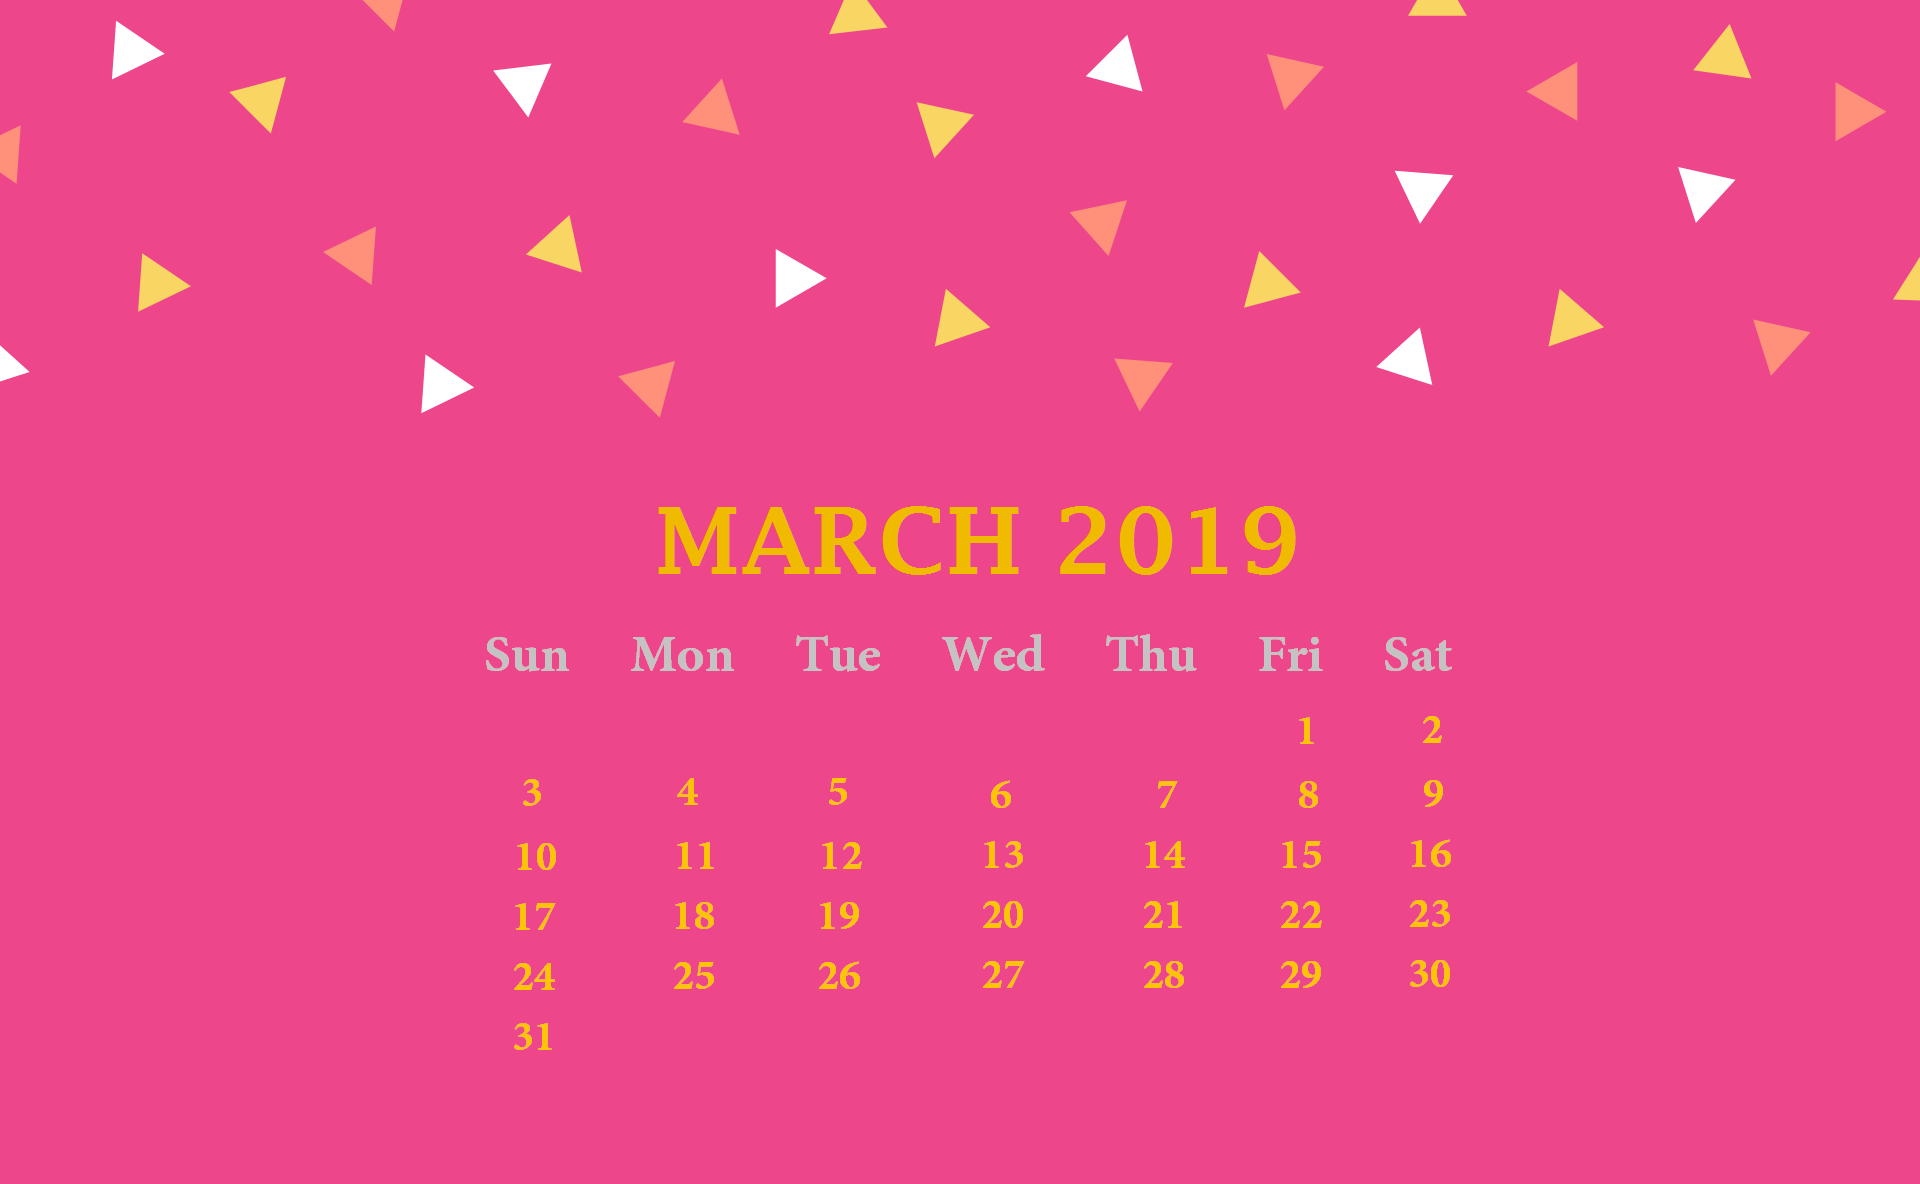 March 2019 Desktop Wallpaper Calendar Latest Calendar 1920x1184